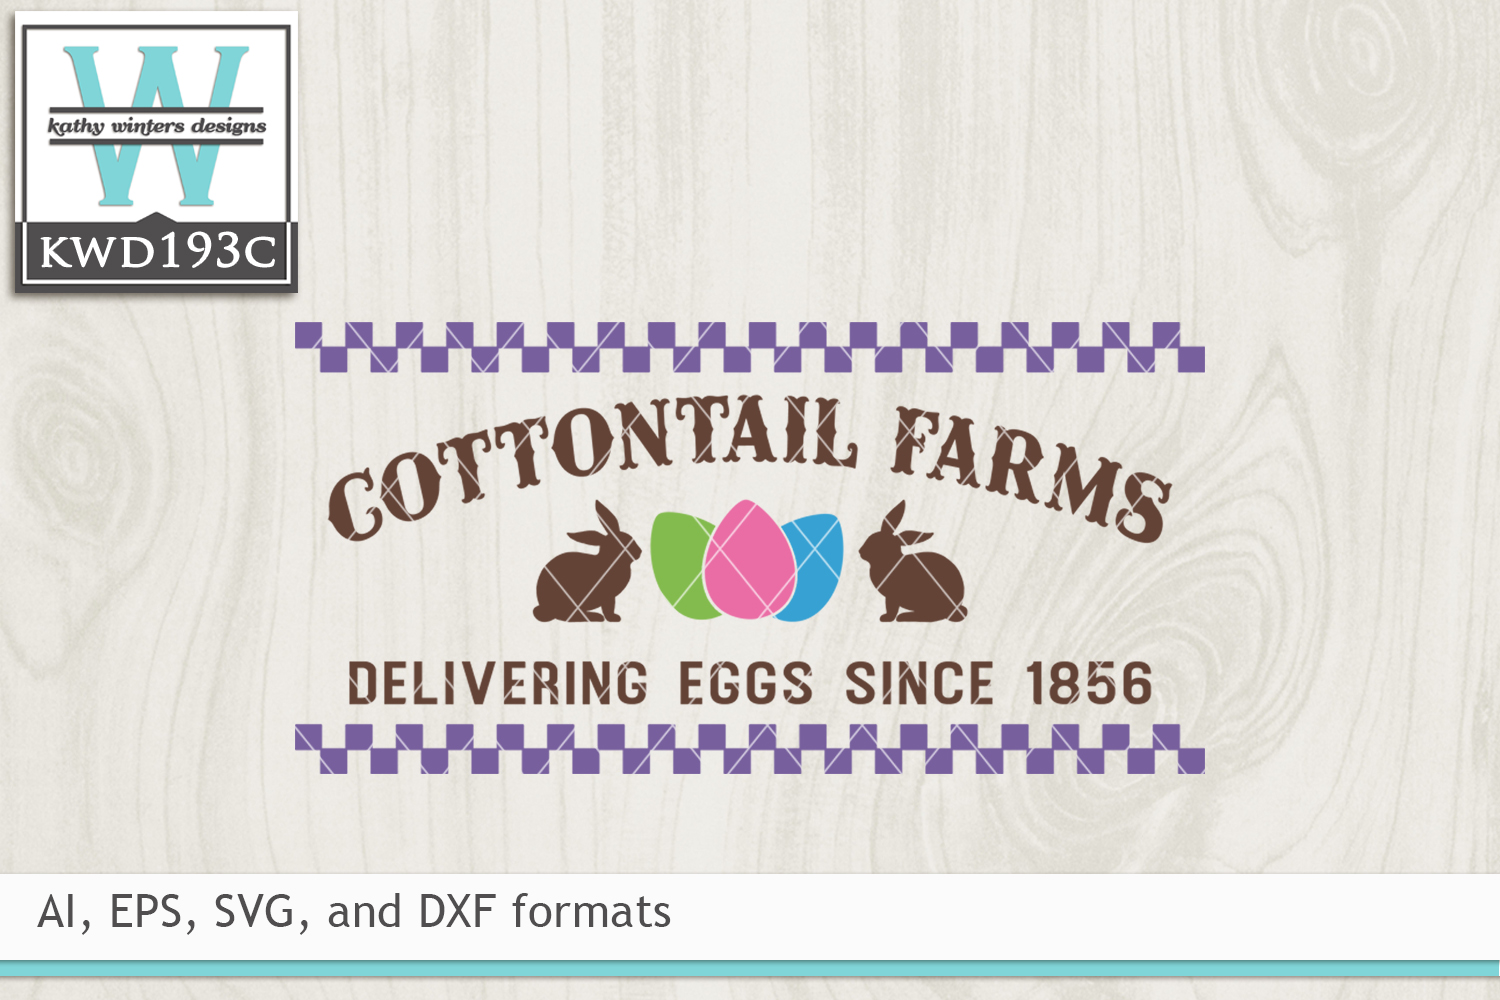 Easter SVG - Cottontail Farms example image 2